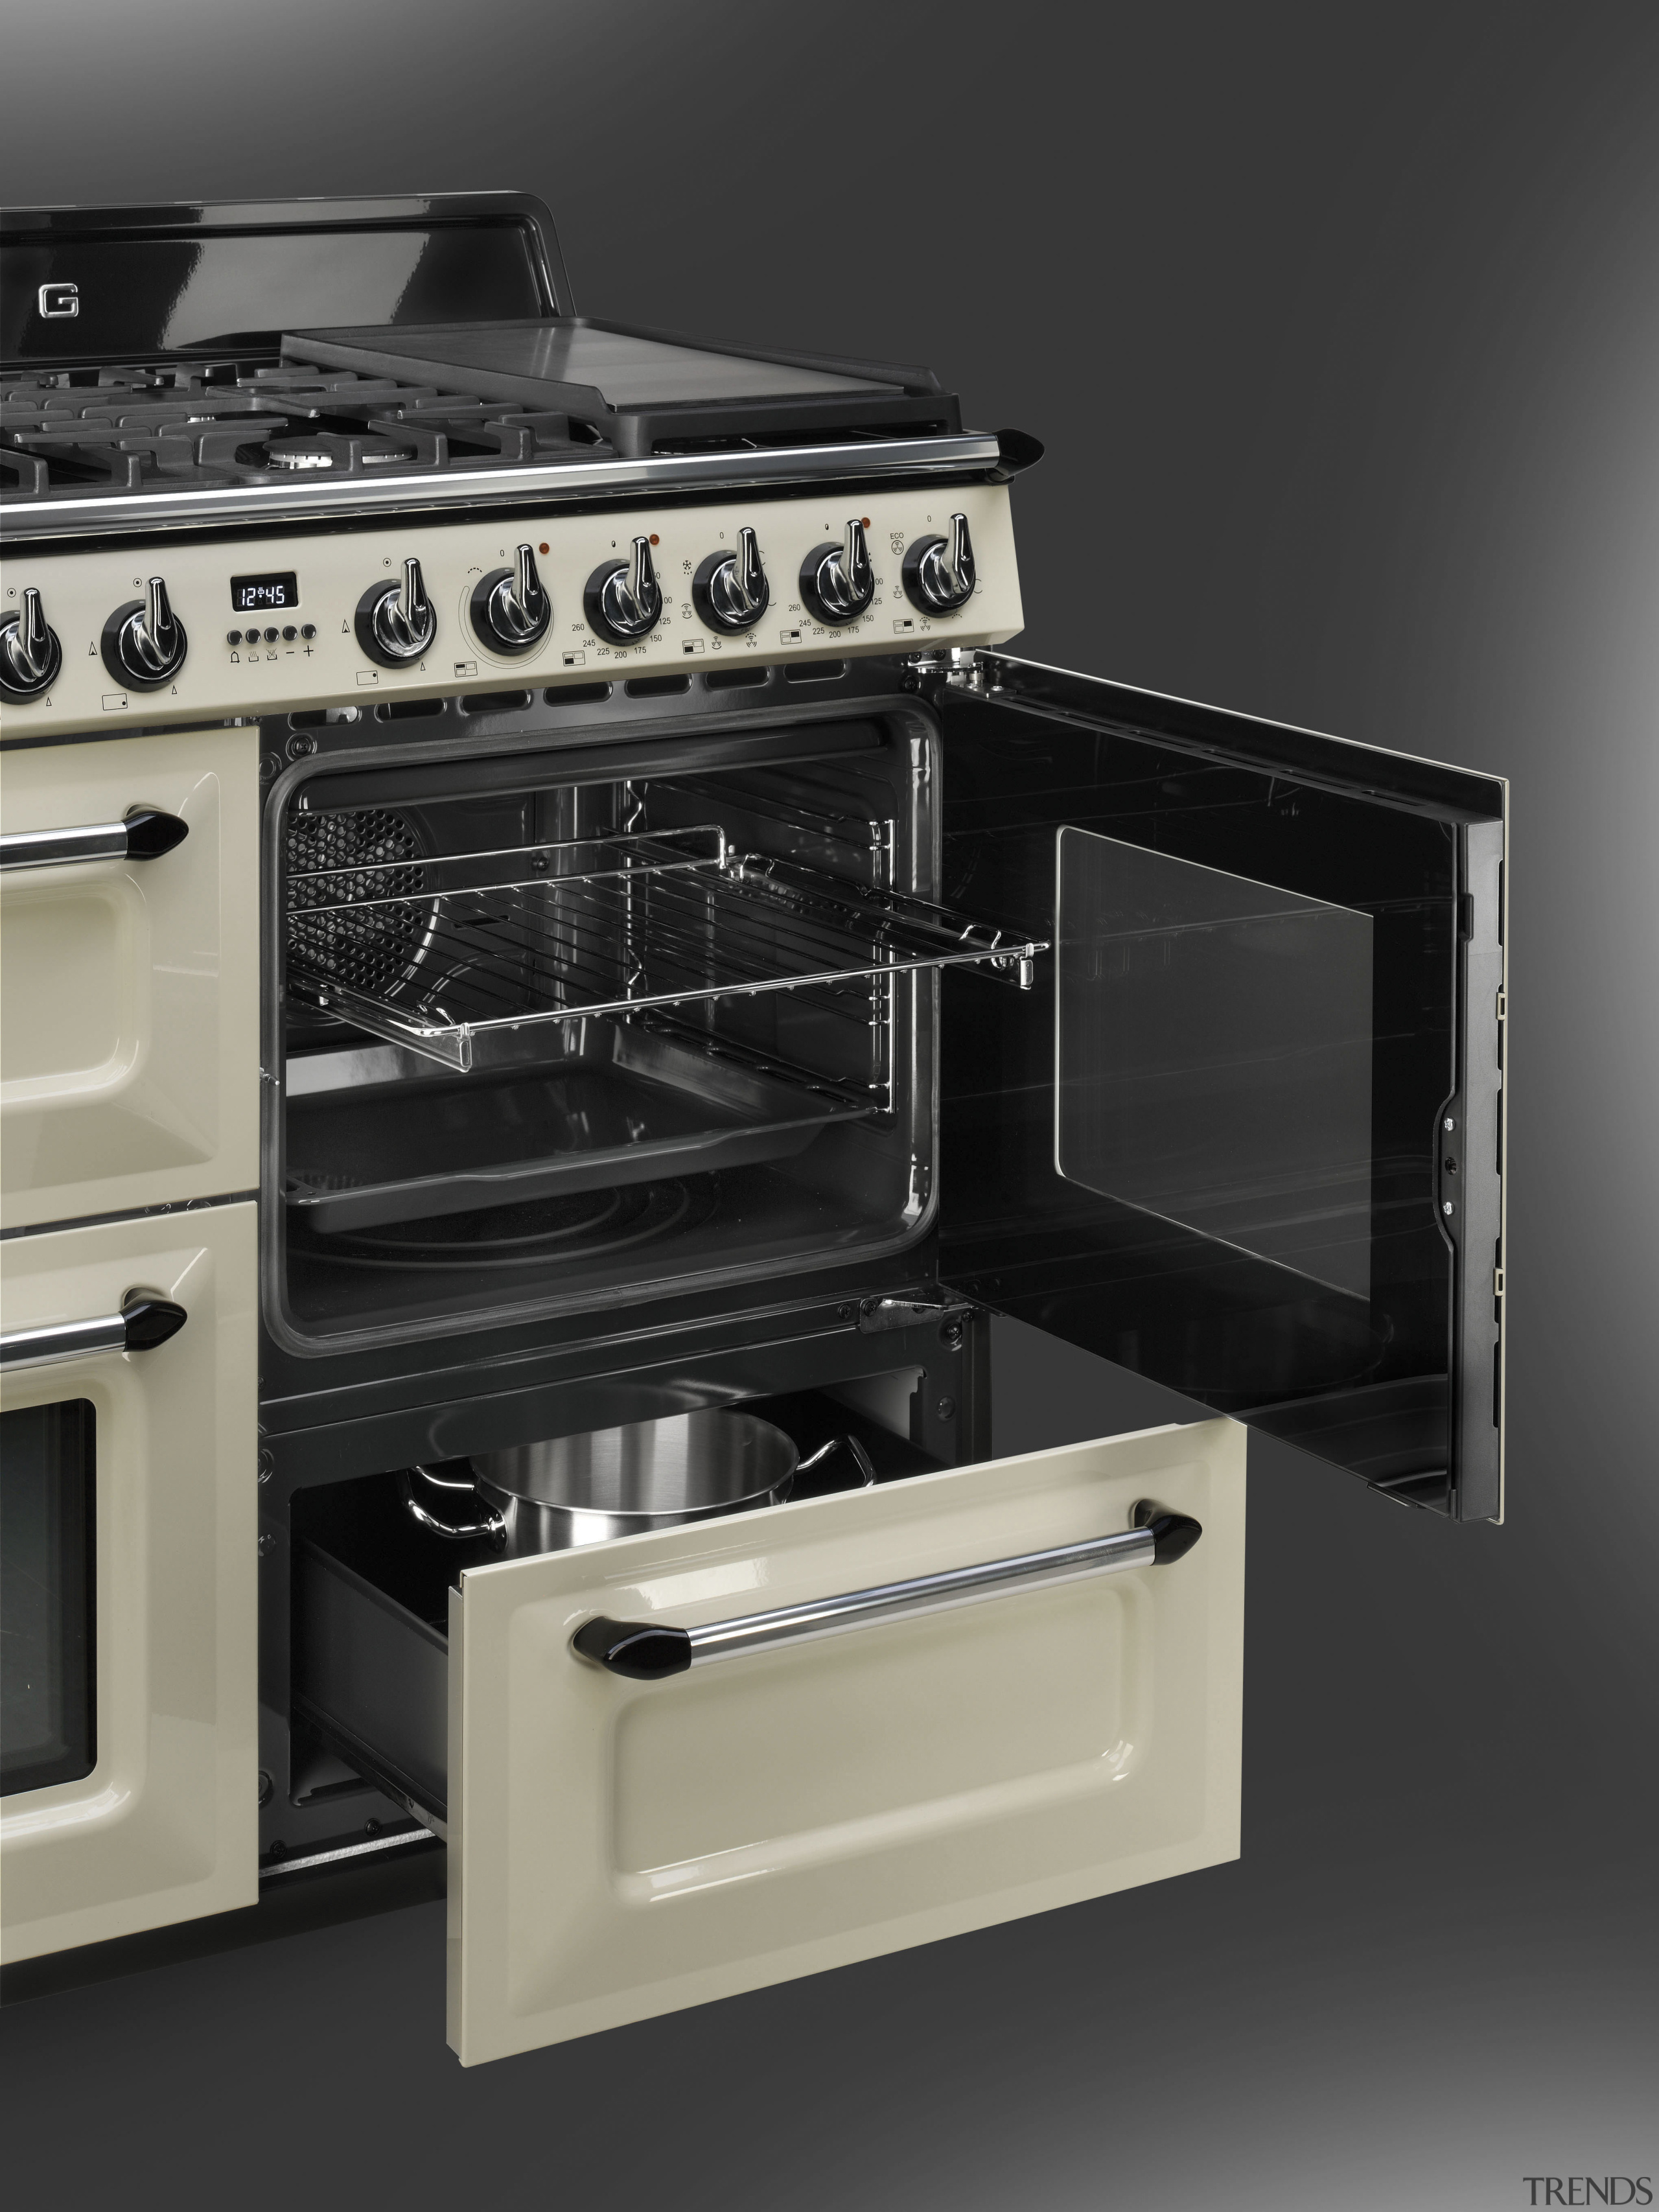 The 90cm-wide Victoria is also available in an gas stove, home appliance, kitchen appliance, kitchen stove, major appliance, microwave oven, oven, black, gray